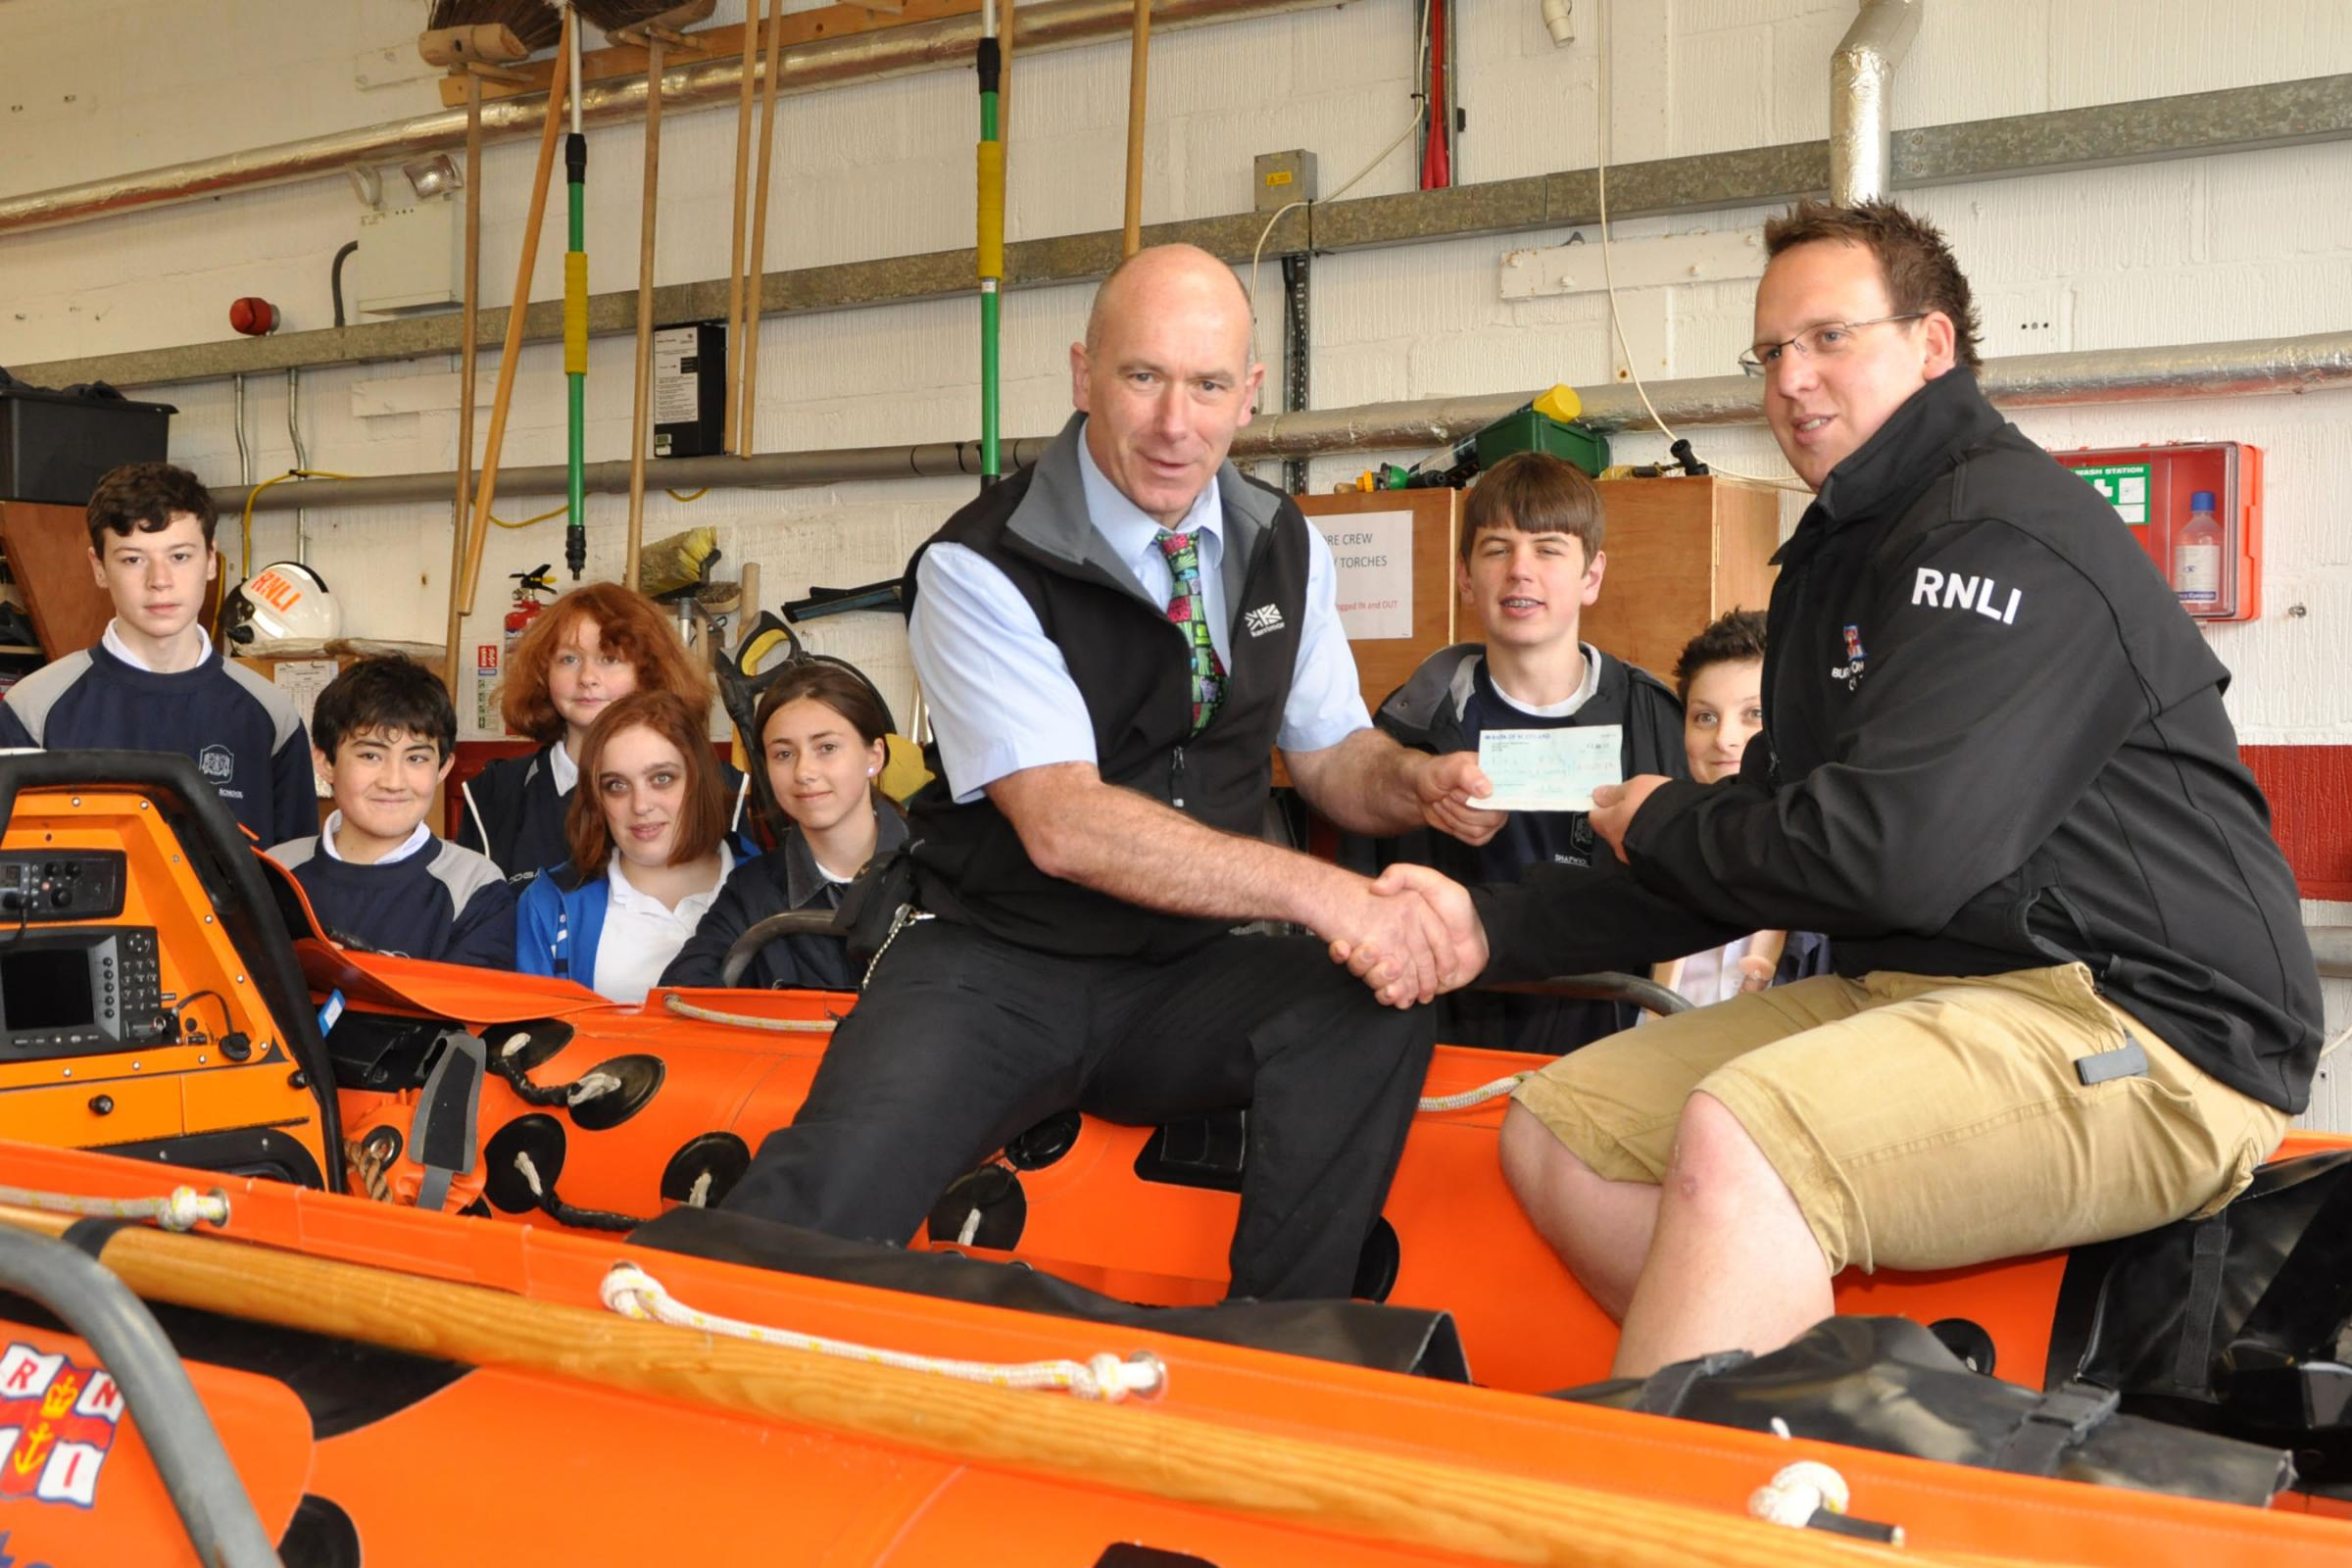 Dan Burnett hands the cheque for £1,002 to volunteer crew member Tim Walters